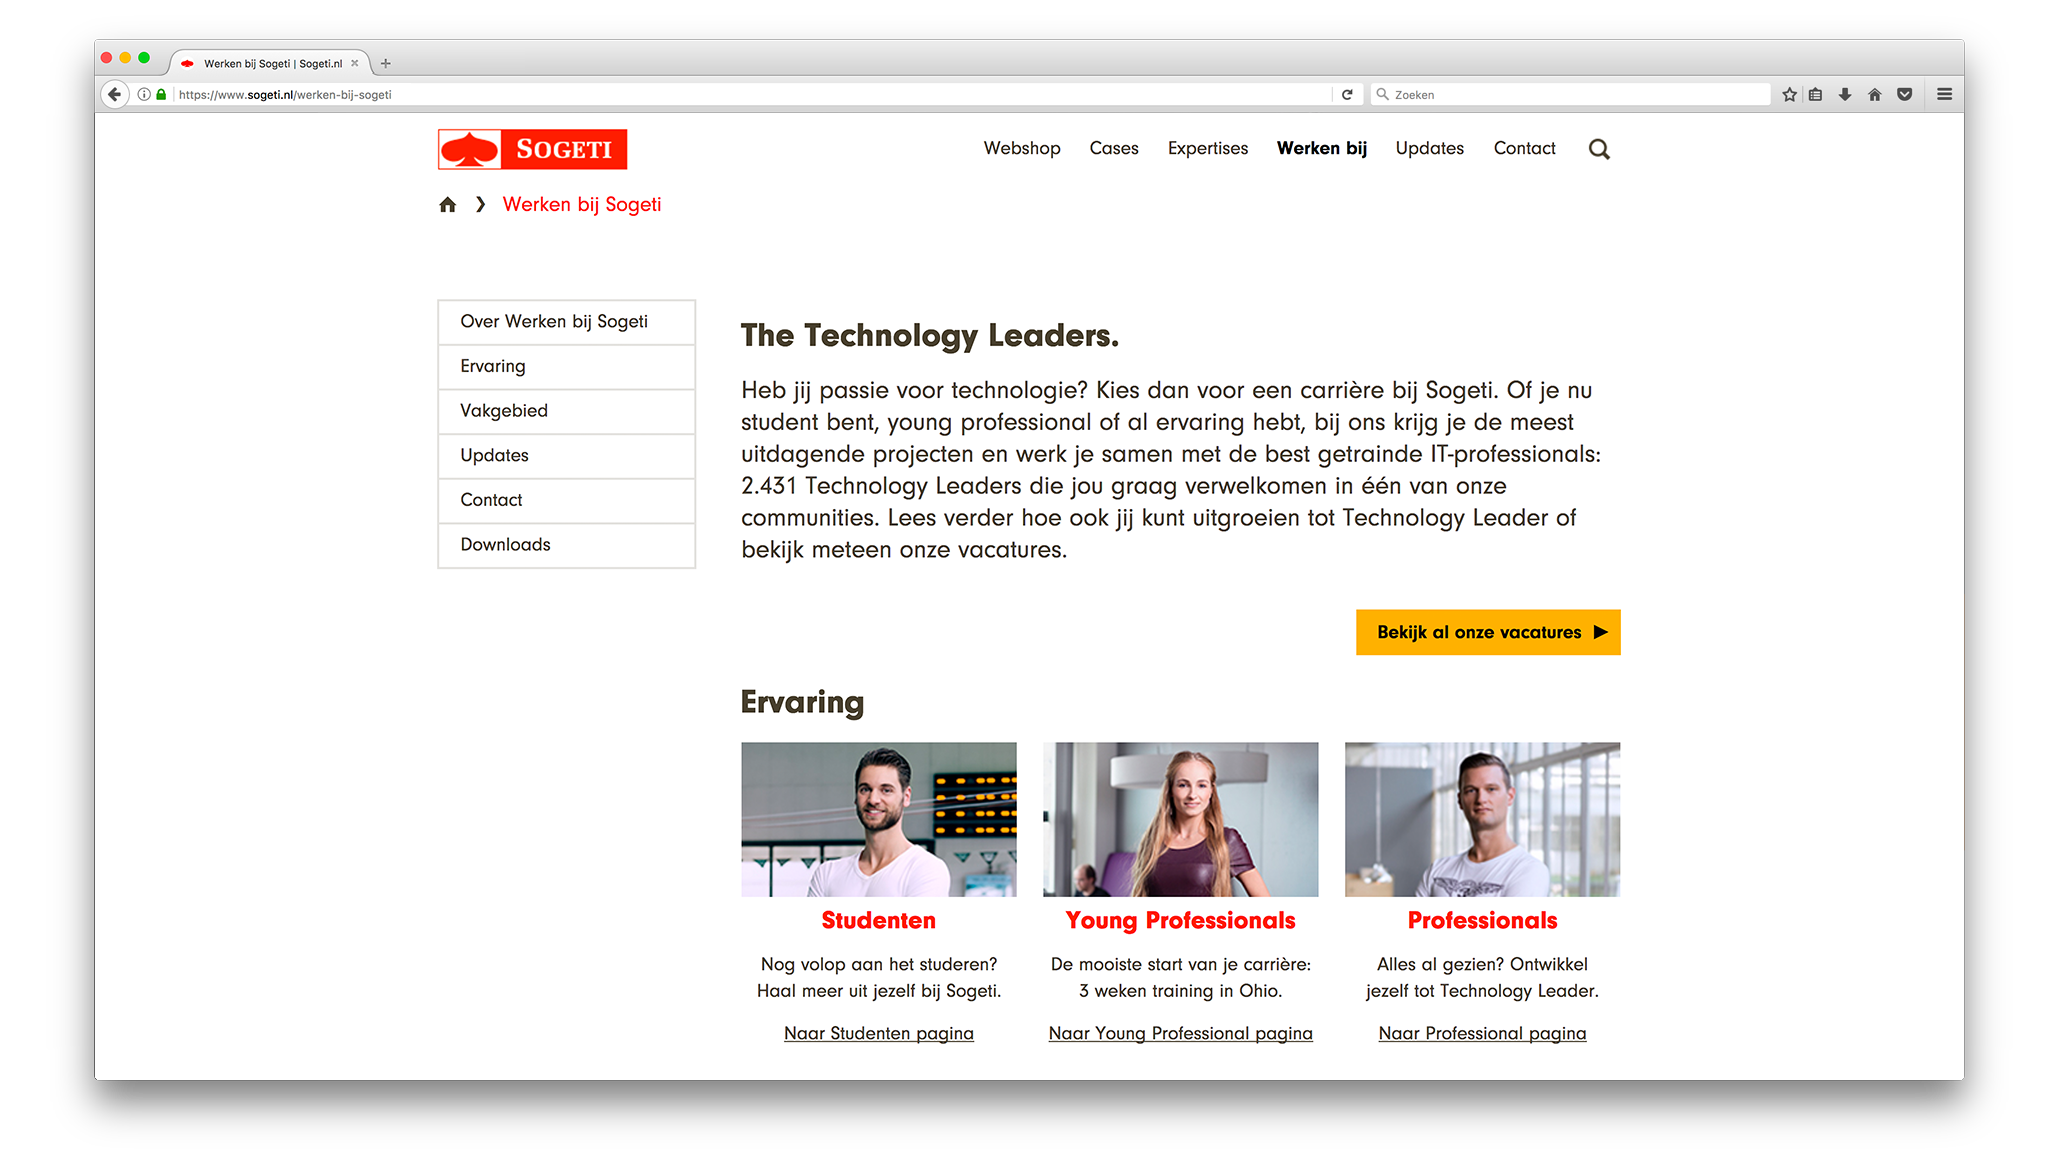 Sogeti. The Technology Leaders.